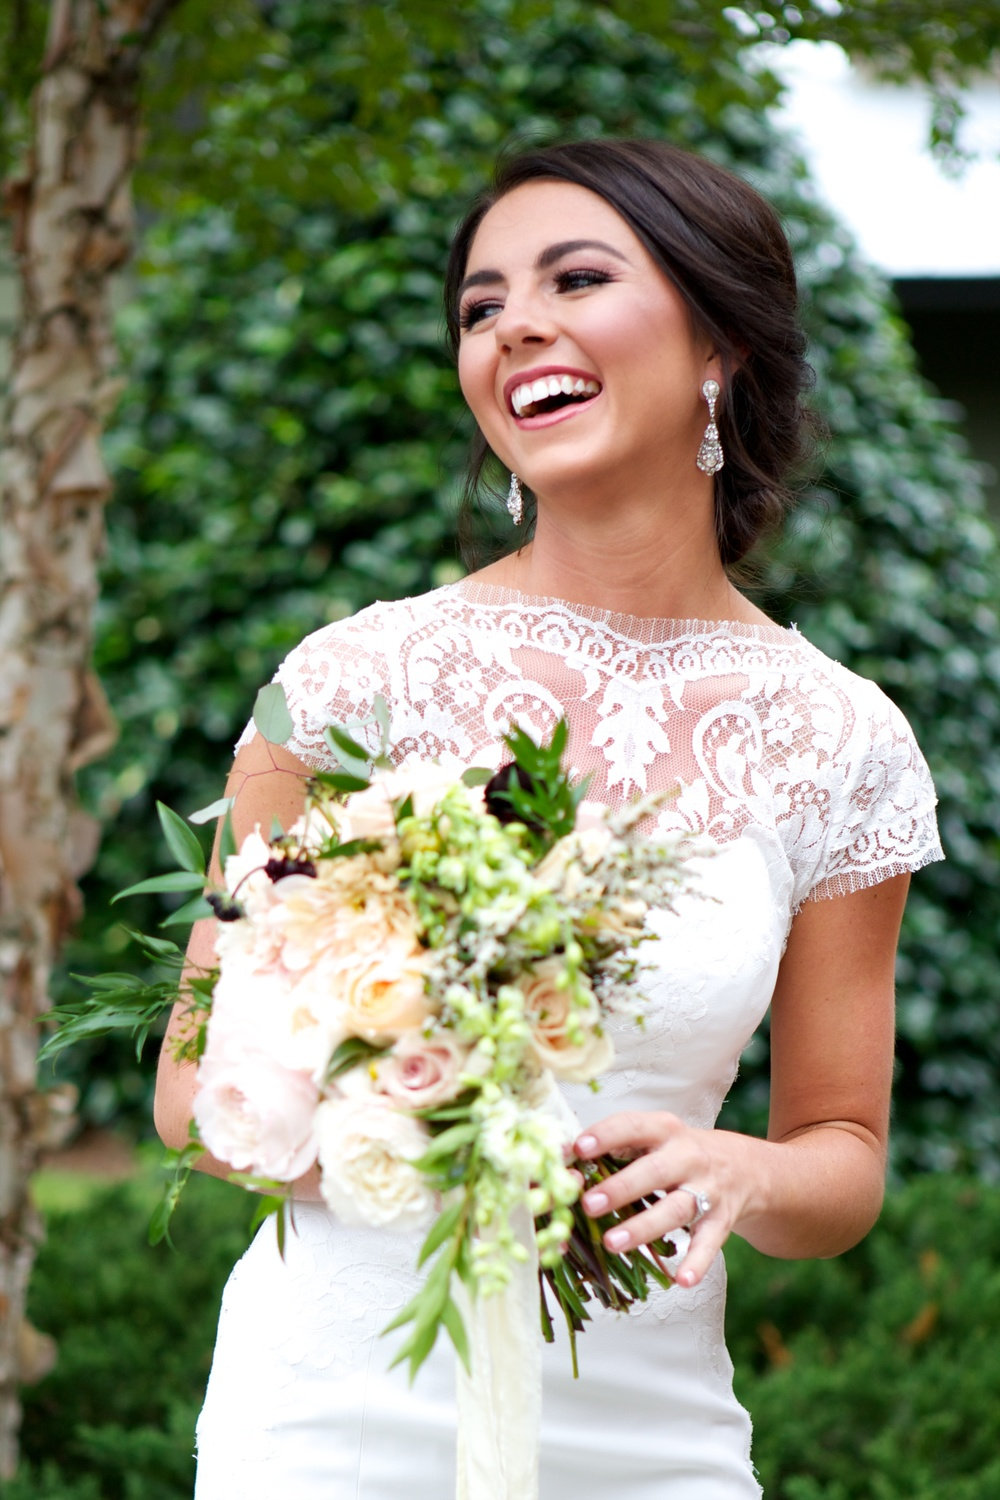 Handley Breaux Designs | October Wedding | Alabama Wedding Planner | Birmingham Wedding Planner